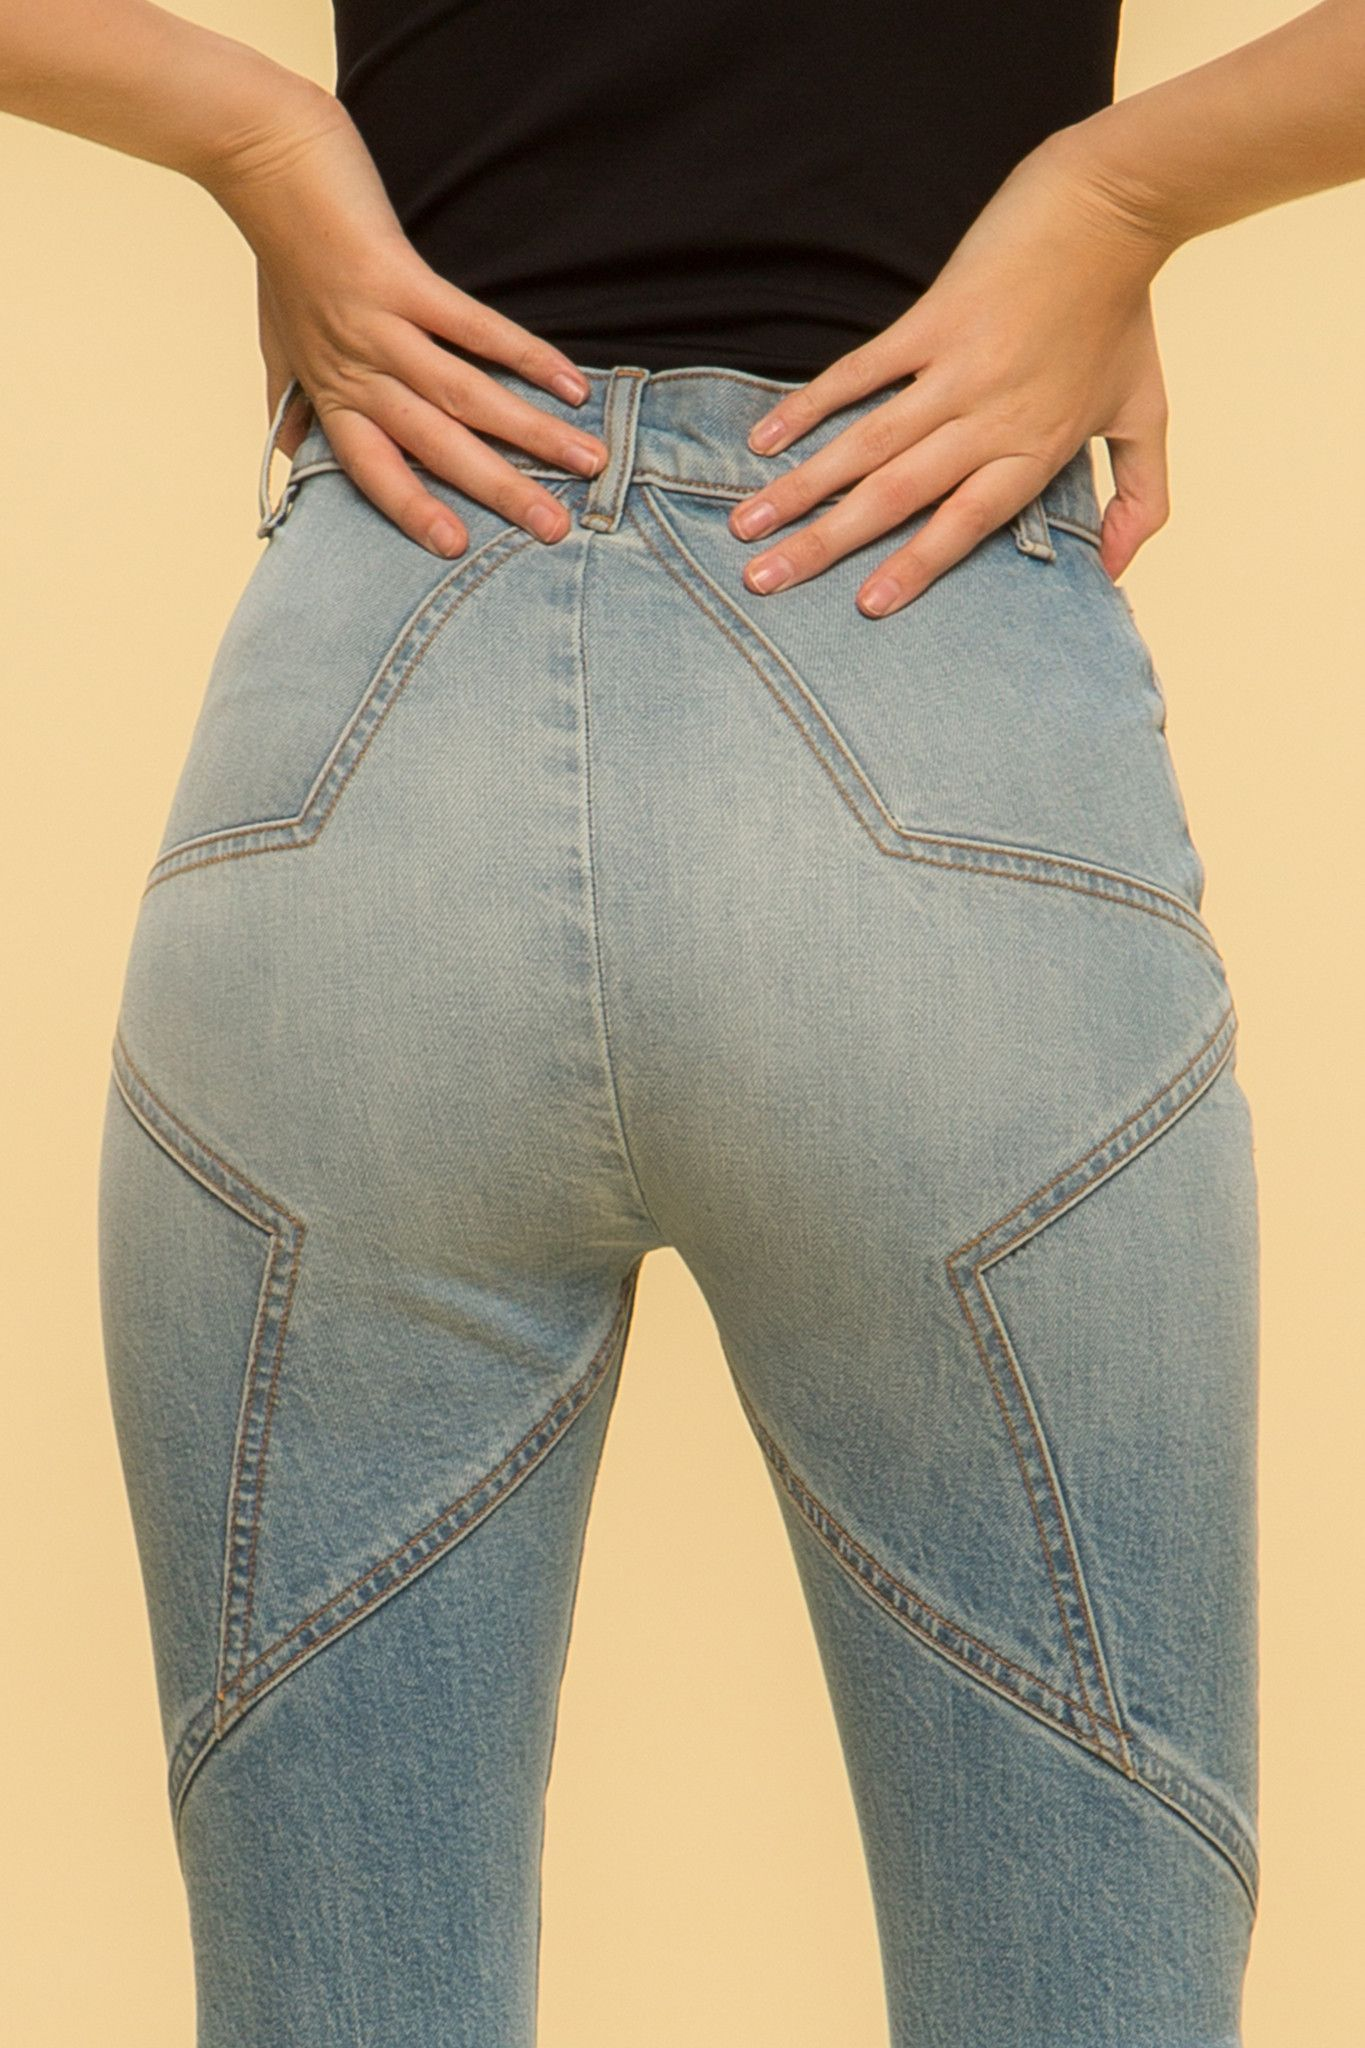 size 25 REALLY WANT